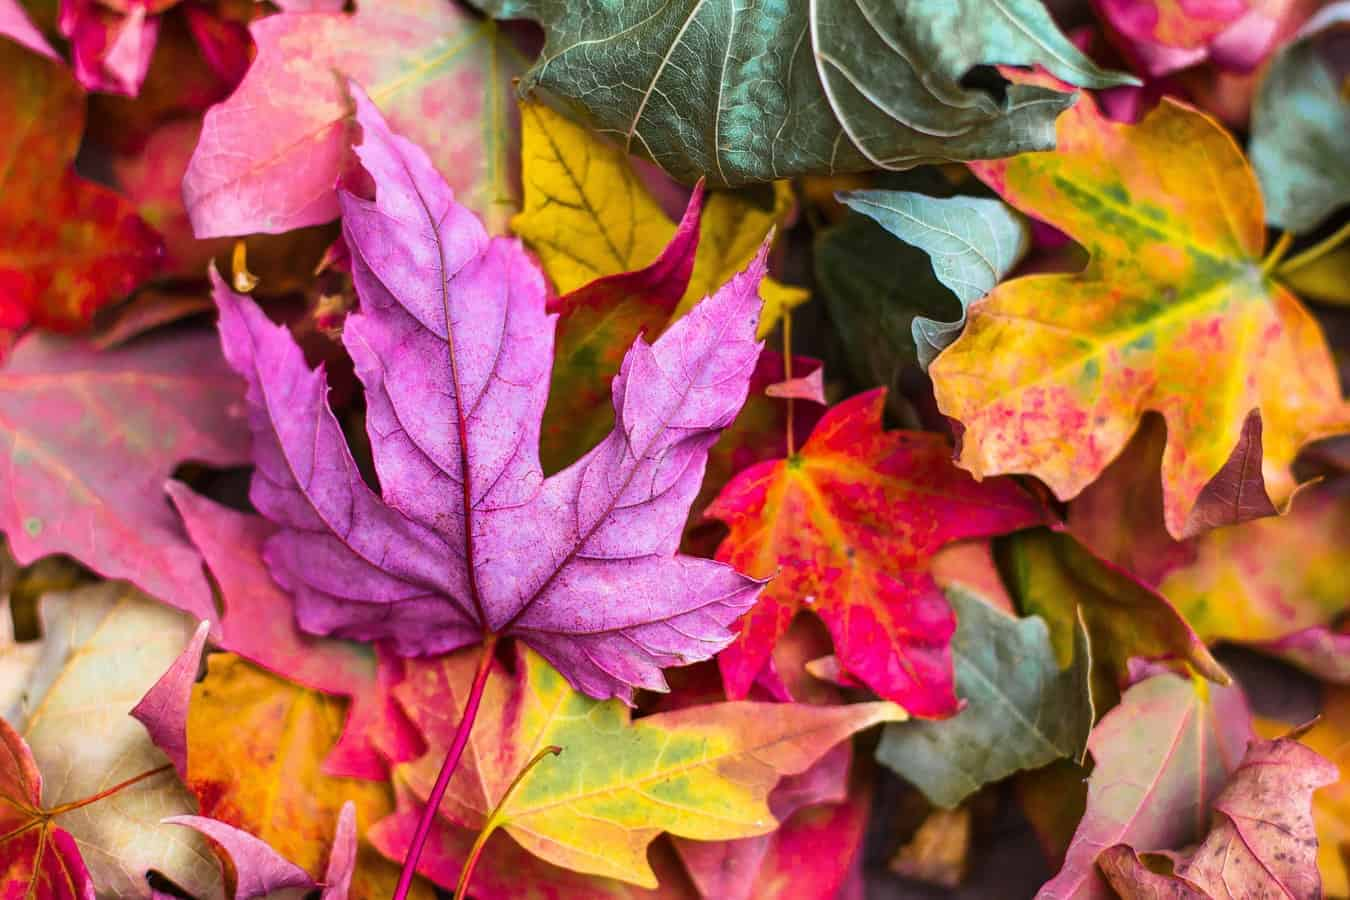 A pile of brightly coloured leaves